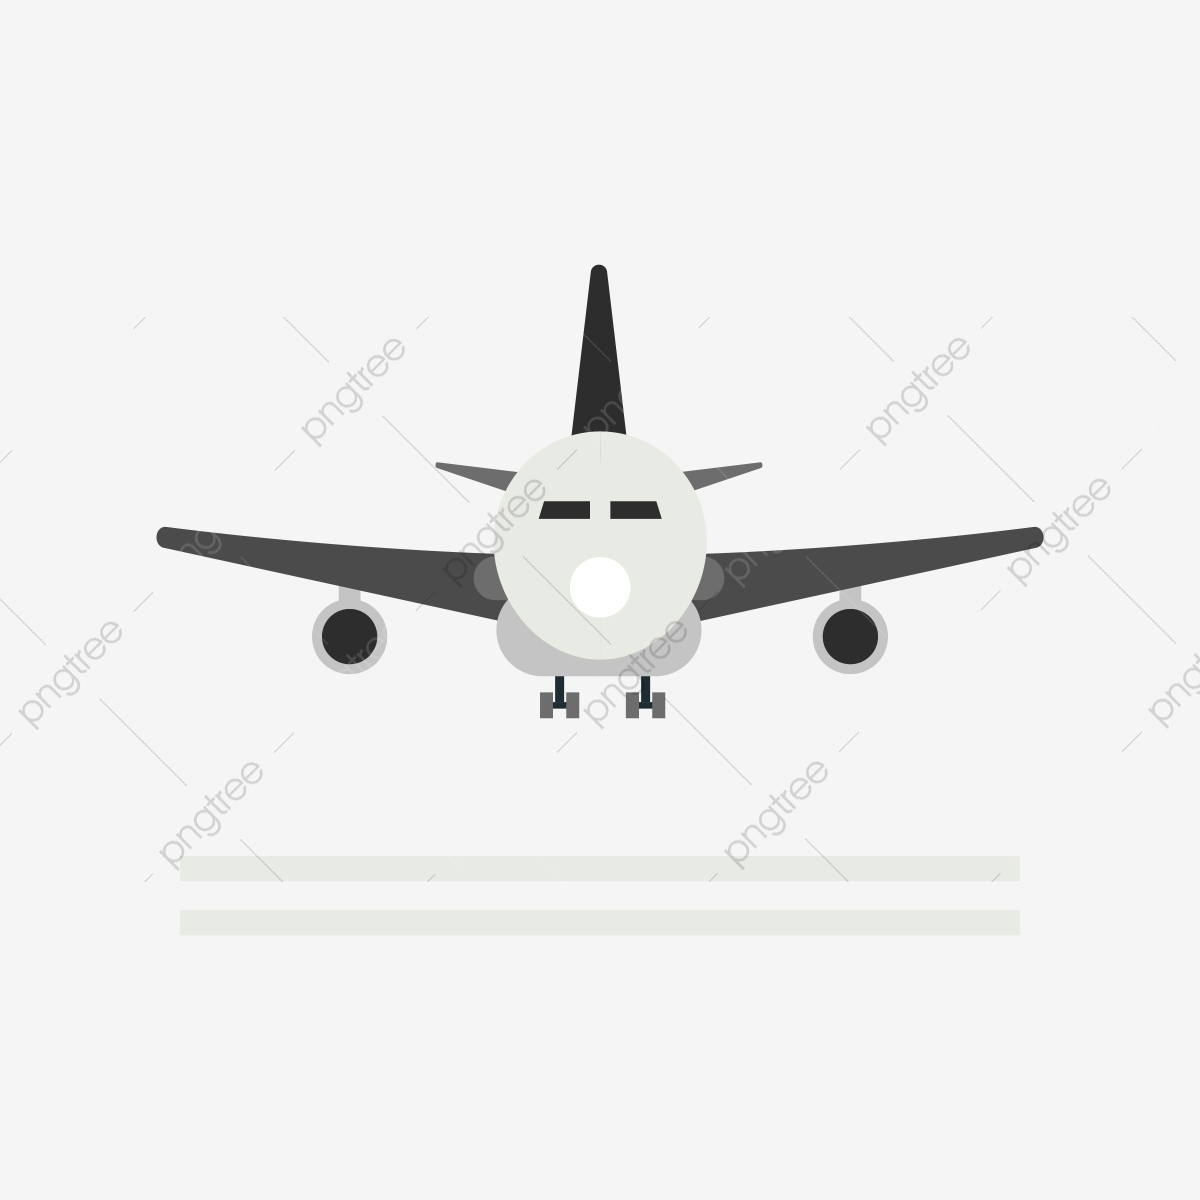 Airplane vector. Black clipart png and